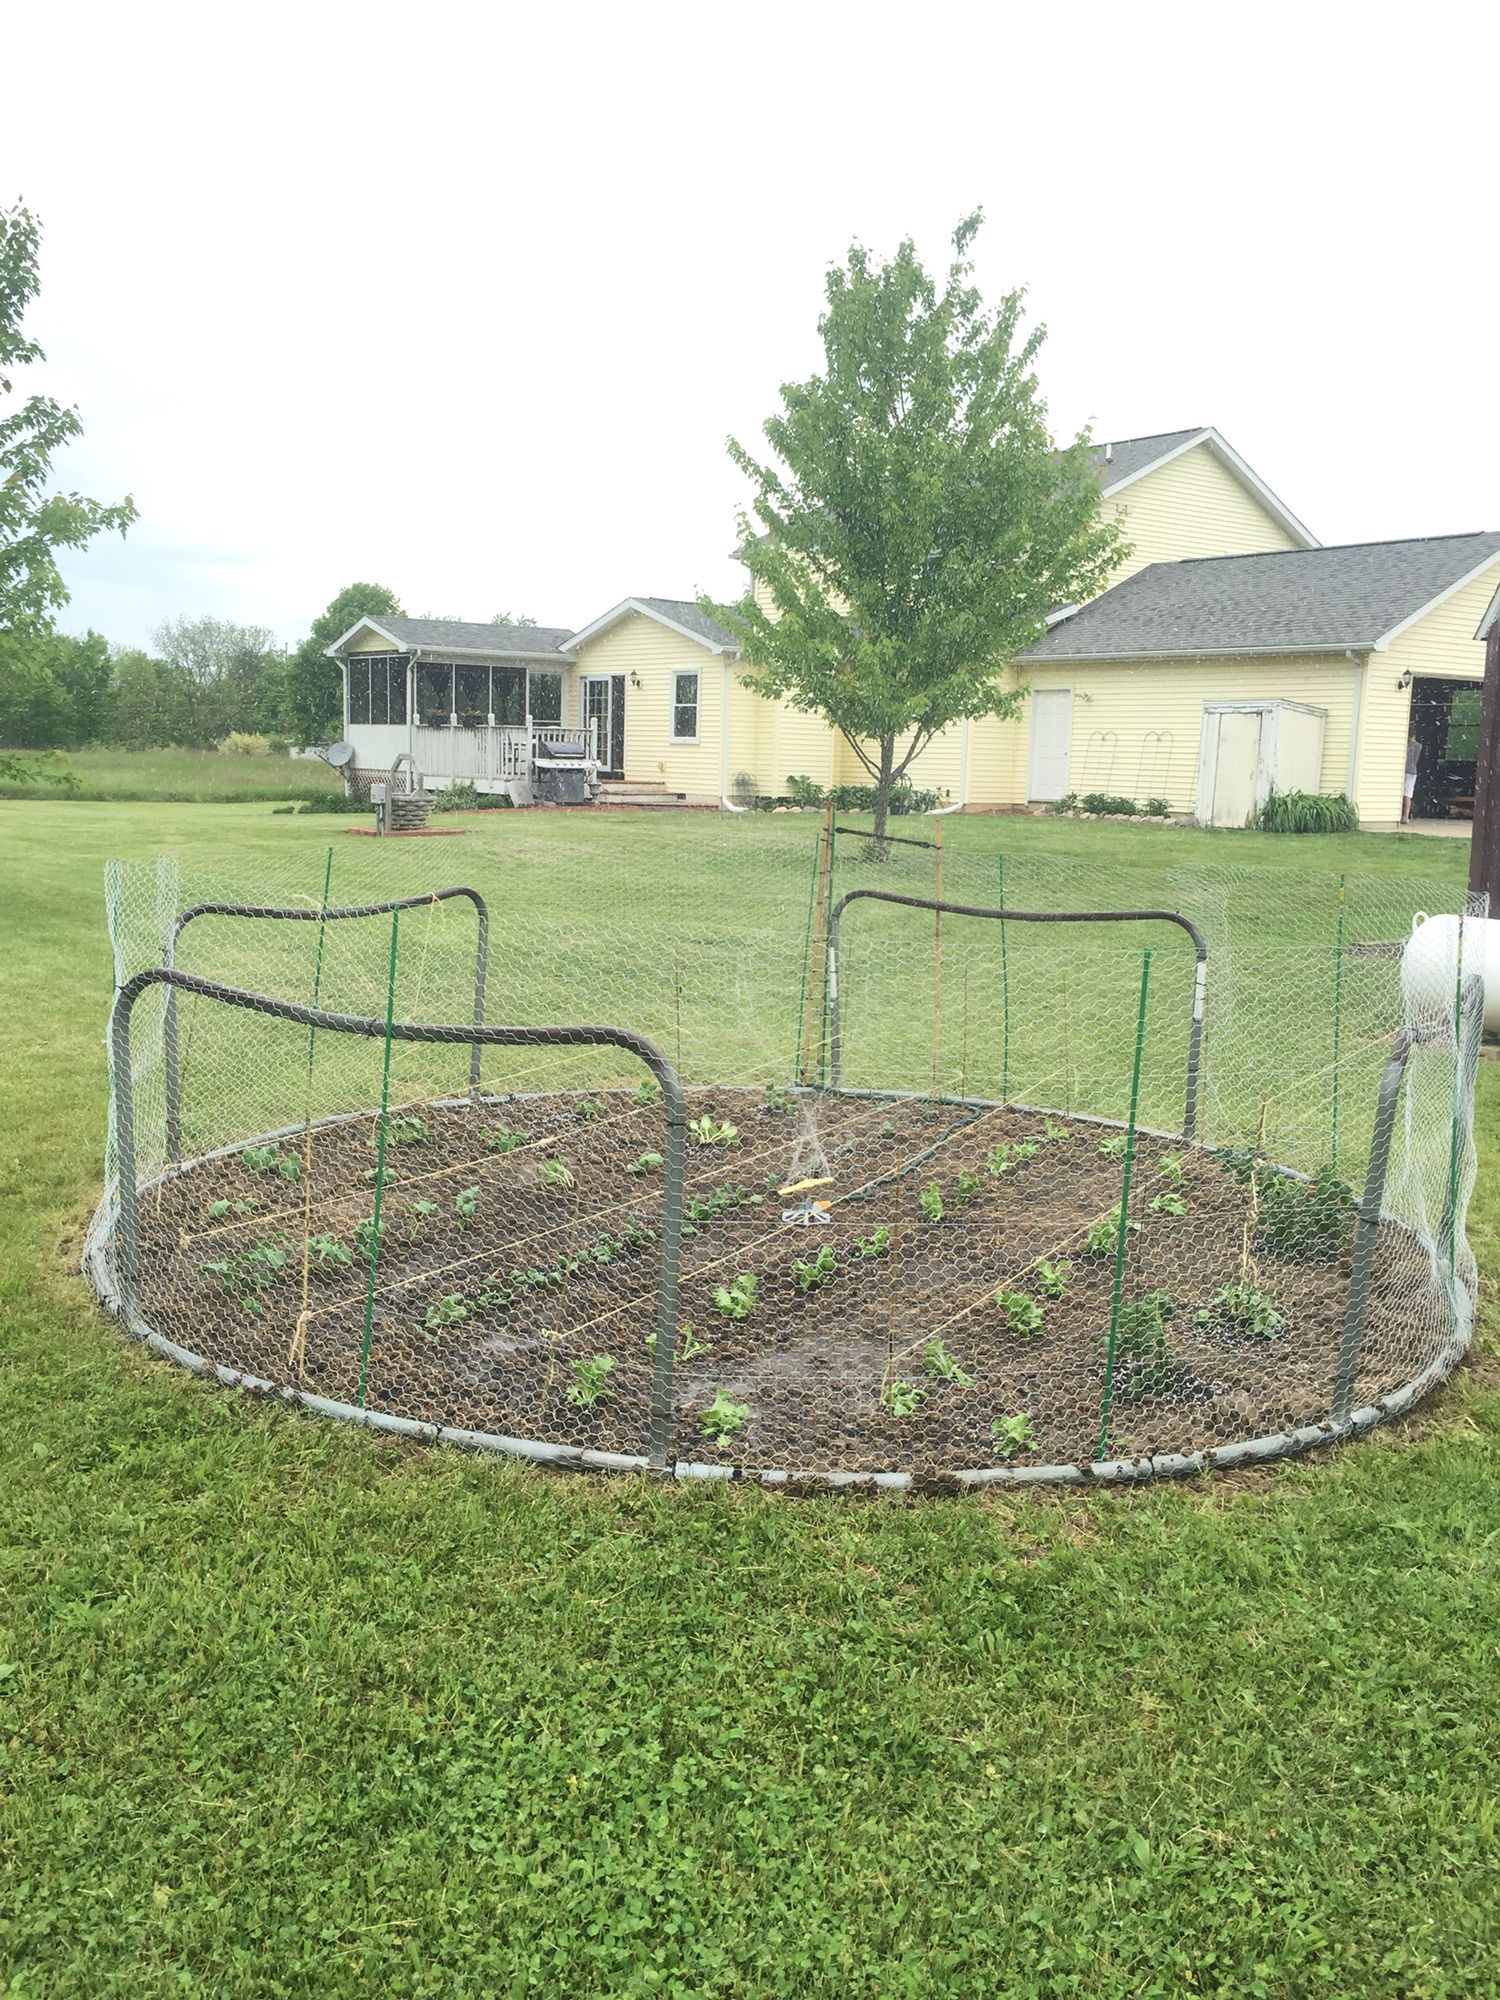 What To Do With Your Old Trampoline | Gardening | Pinterest ...